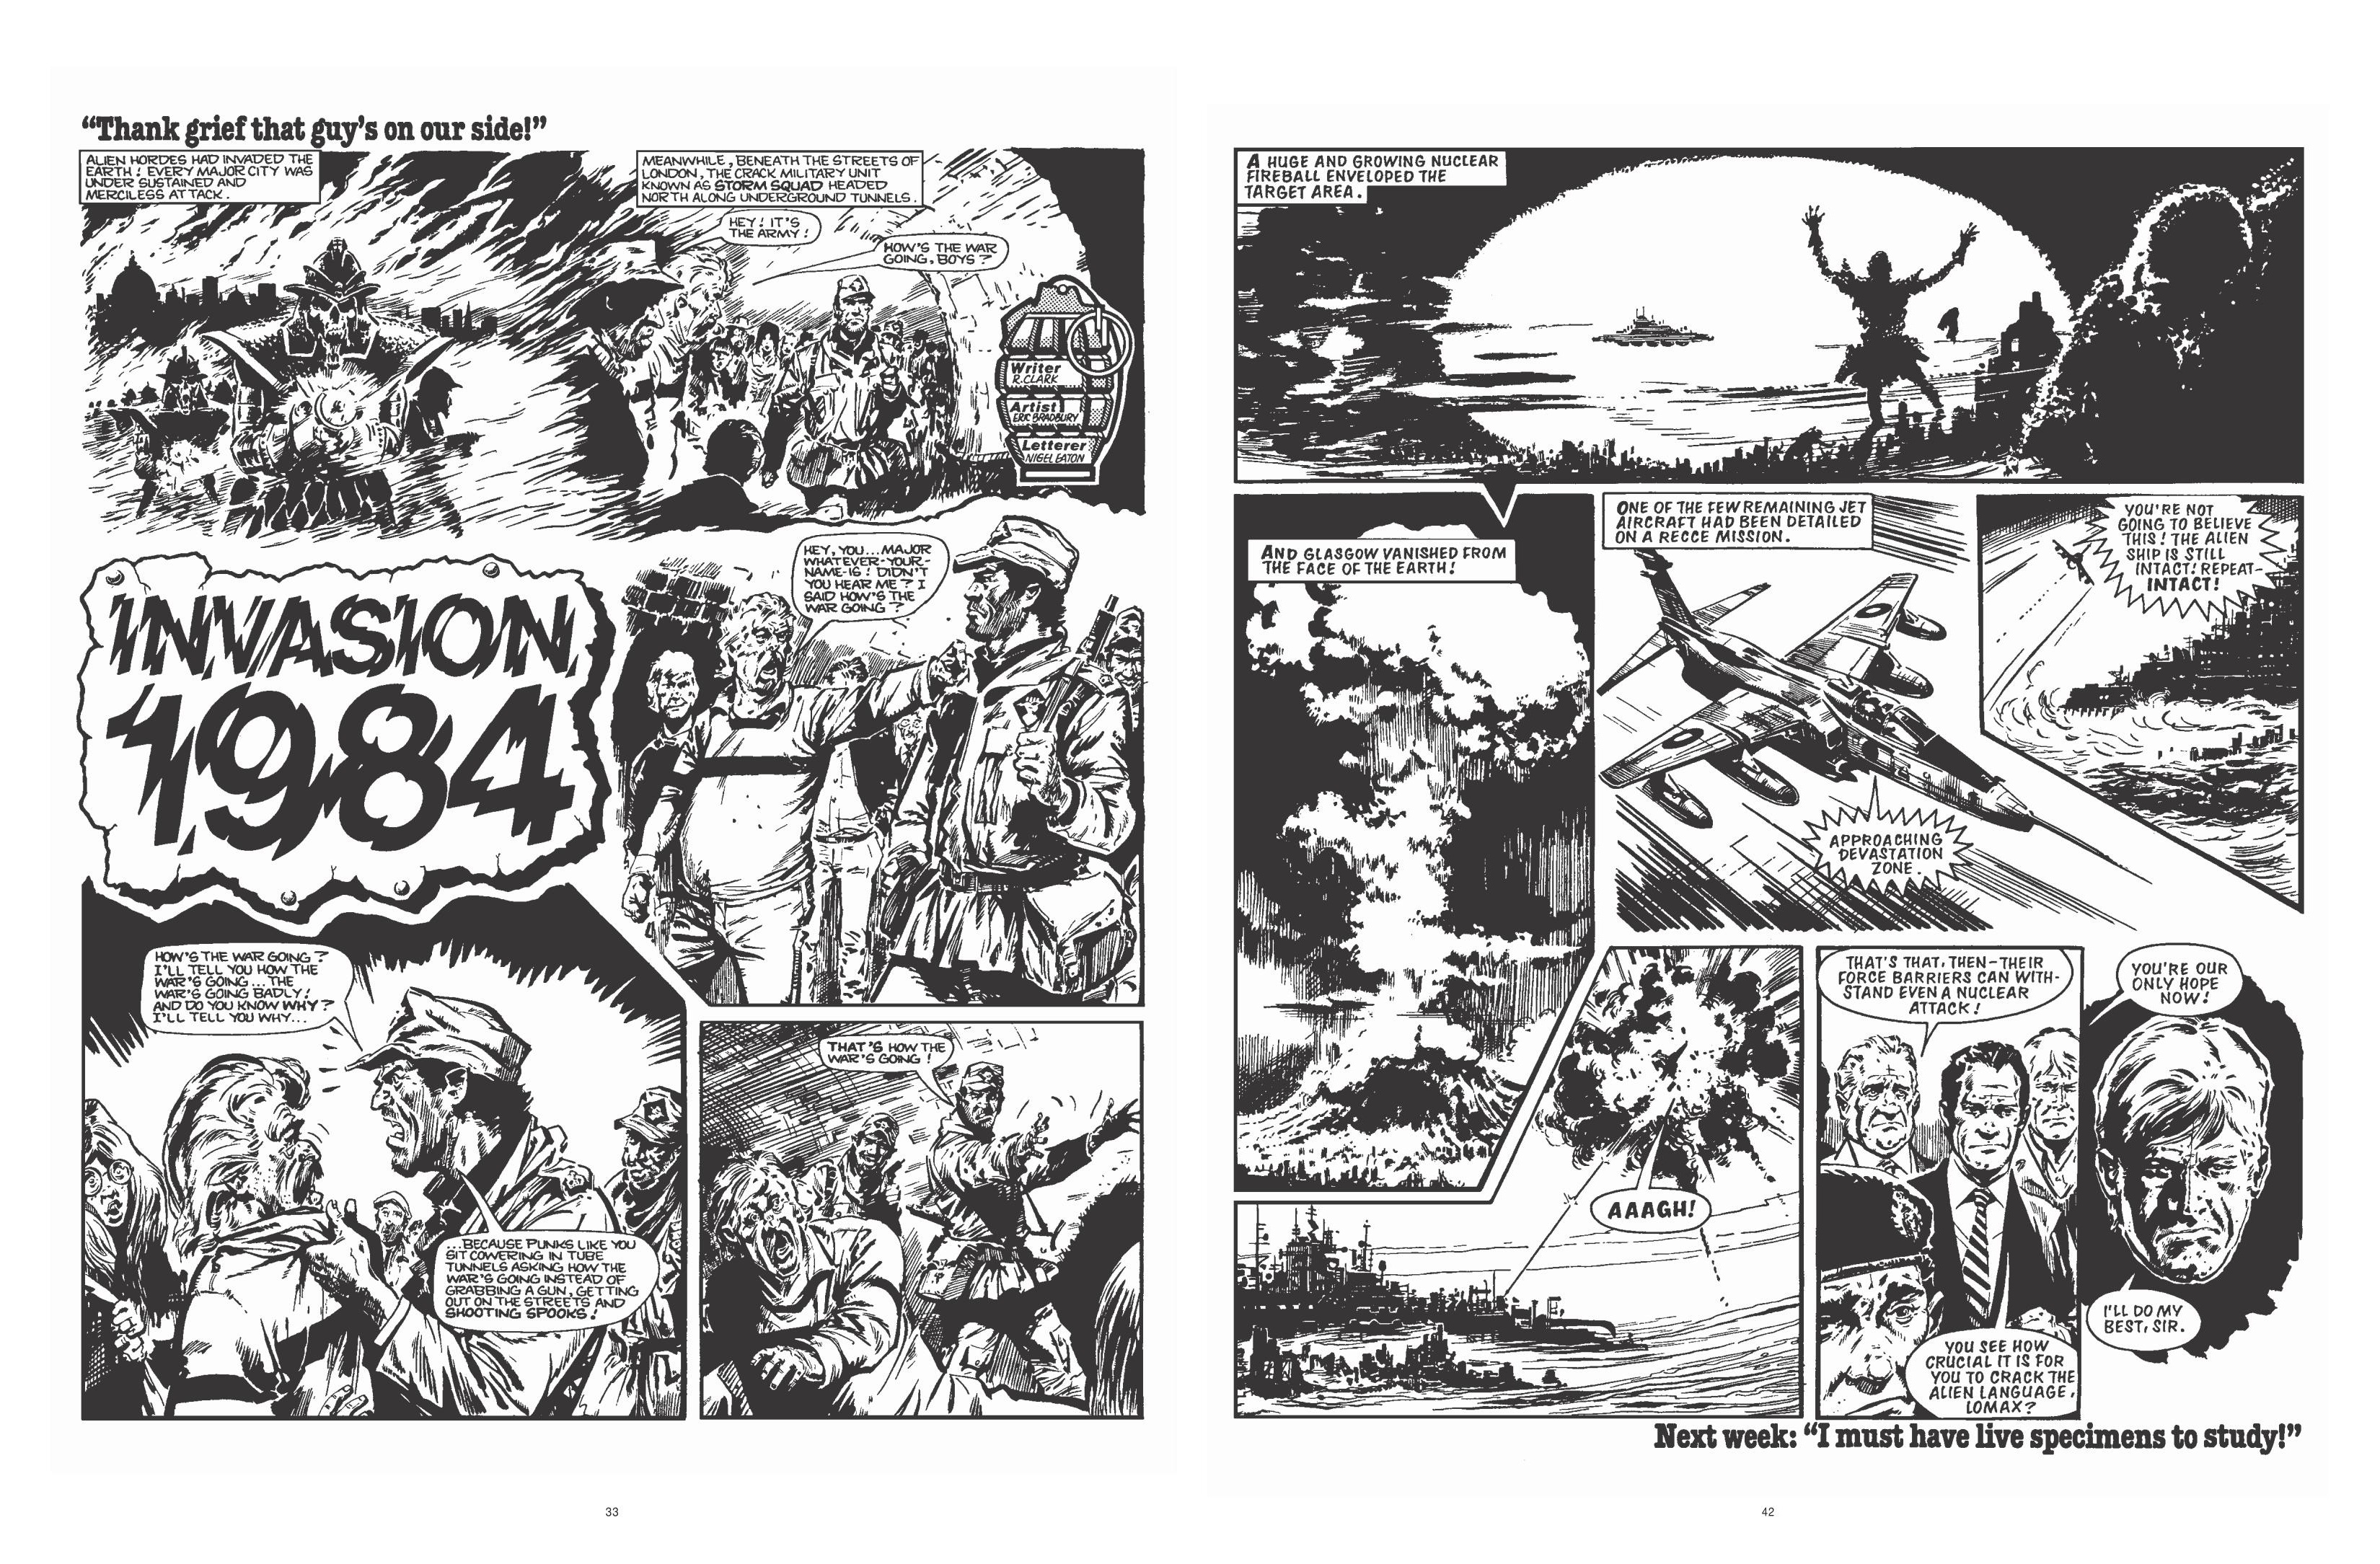 Invasion 1984 review